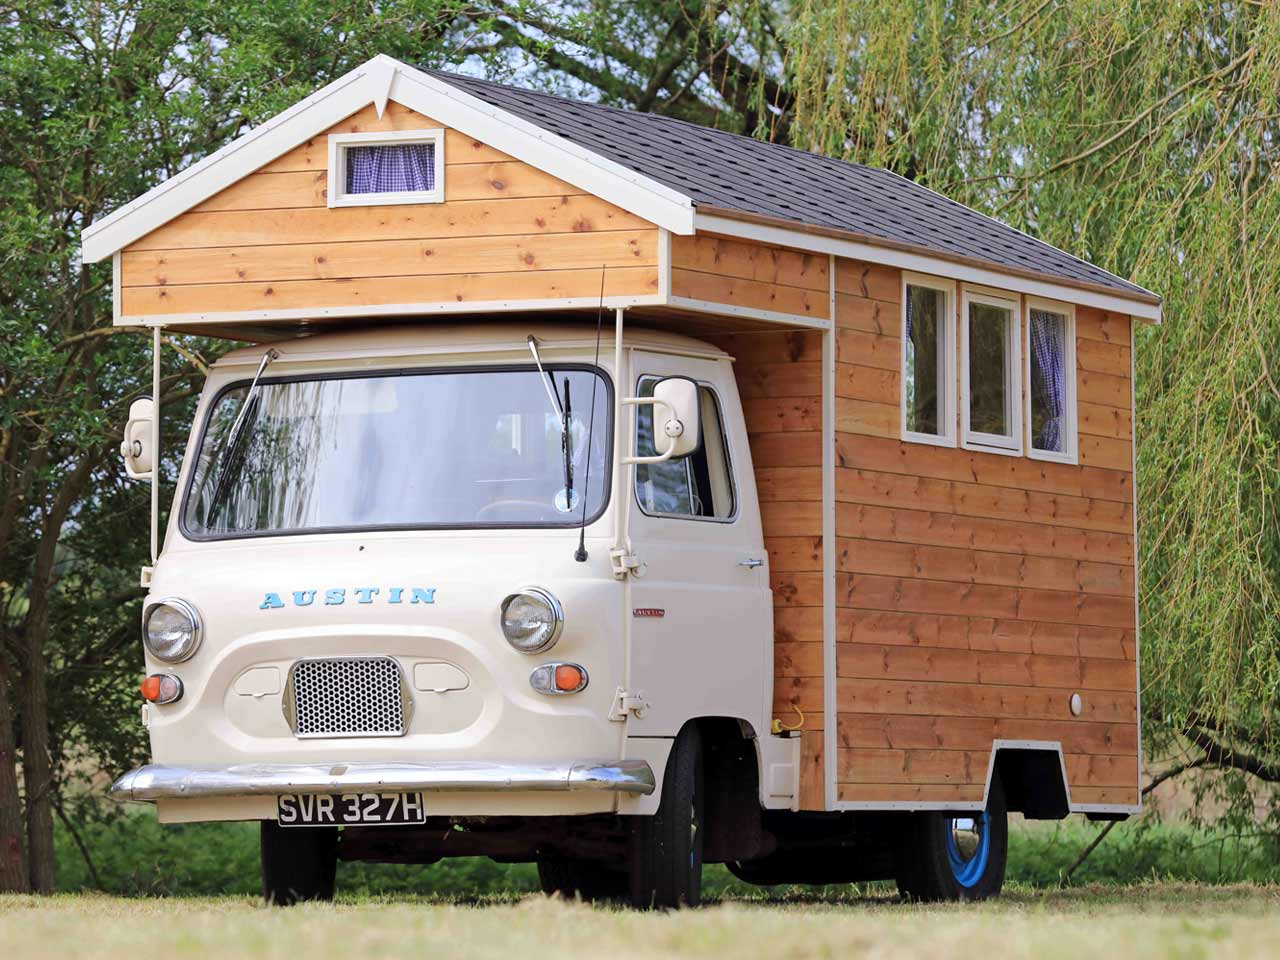 Austin Camper Shed – owned by Stephen Alleyne in Norfolk